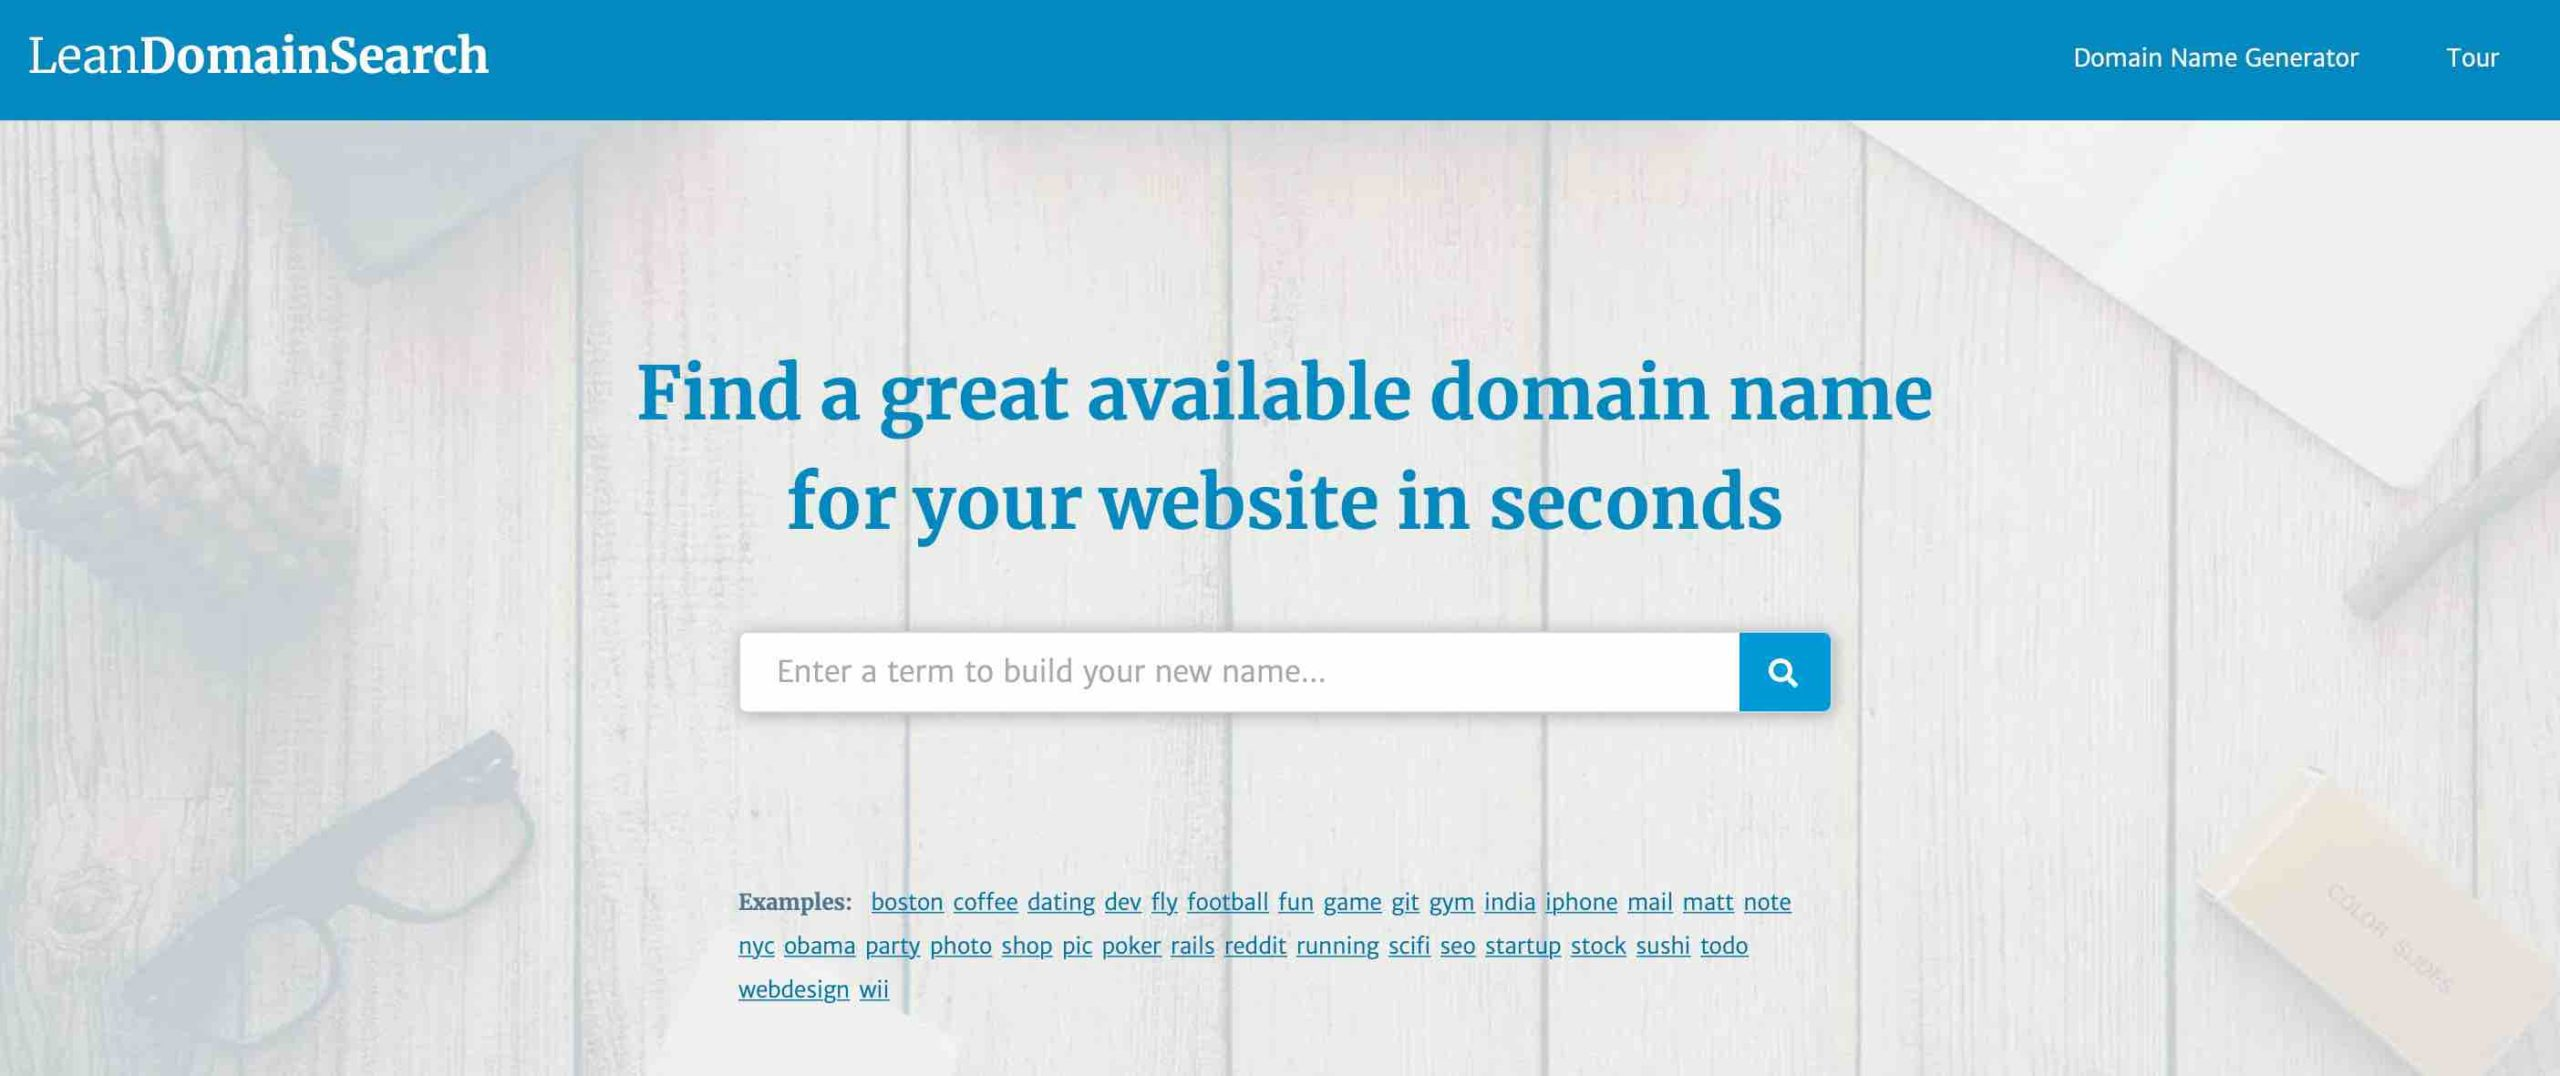 Find a great available domain name for your website in seconds